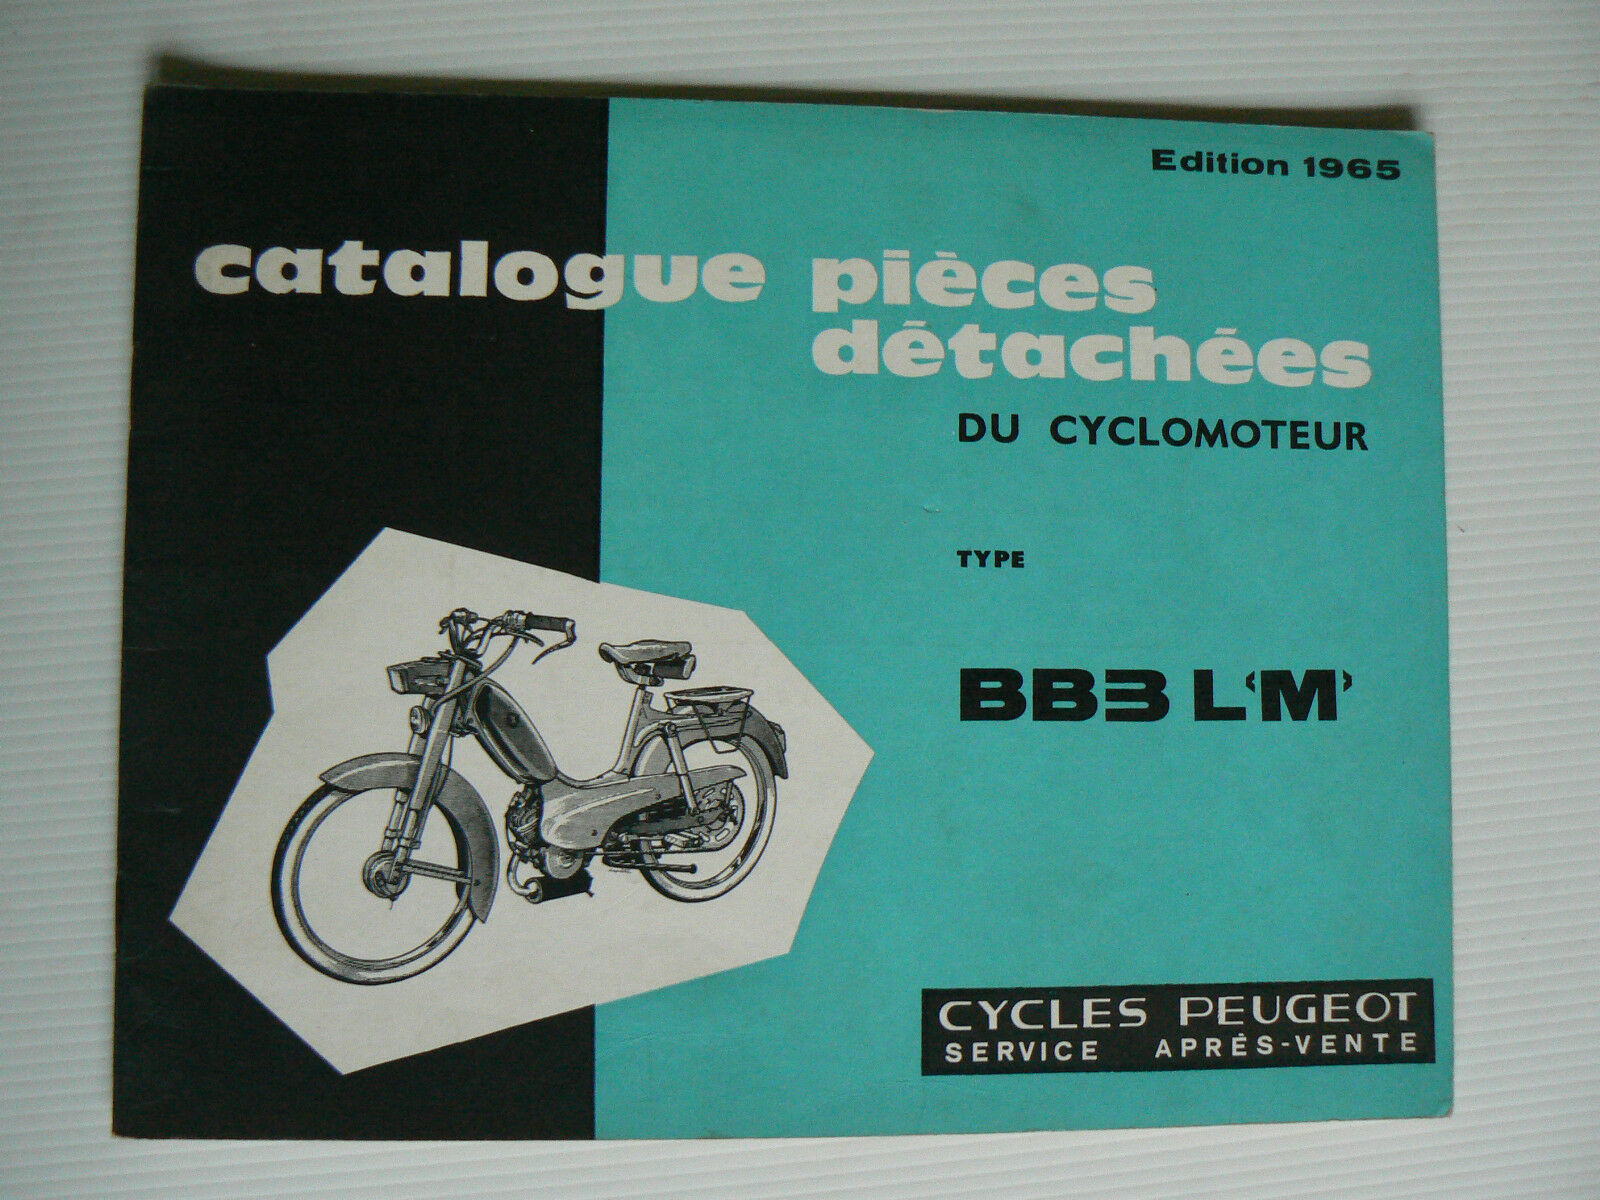 catalogue pieces detachees cyclomoteur peugeot bb 3 lm de 1965 eur 16 00 picclick fr. Black Bedroom Furniture Sets. Home Design Ideas